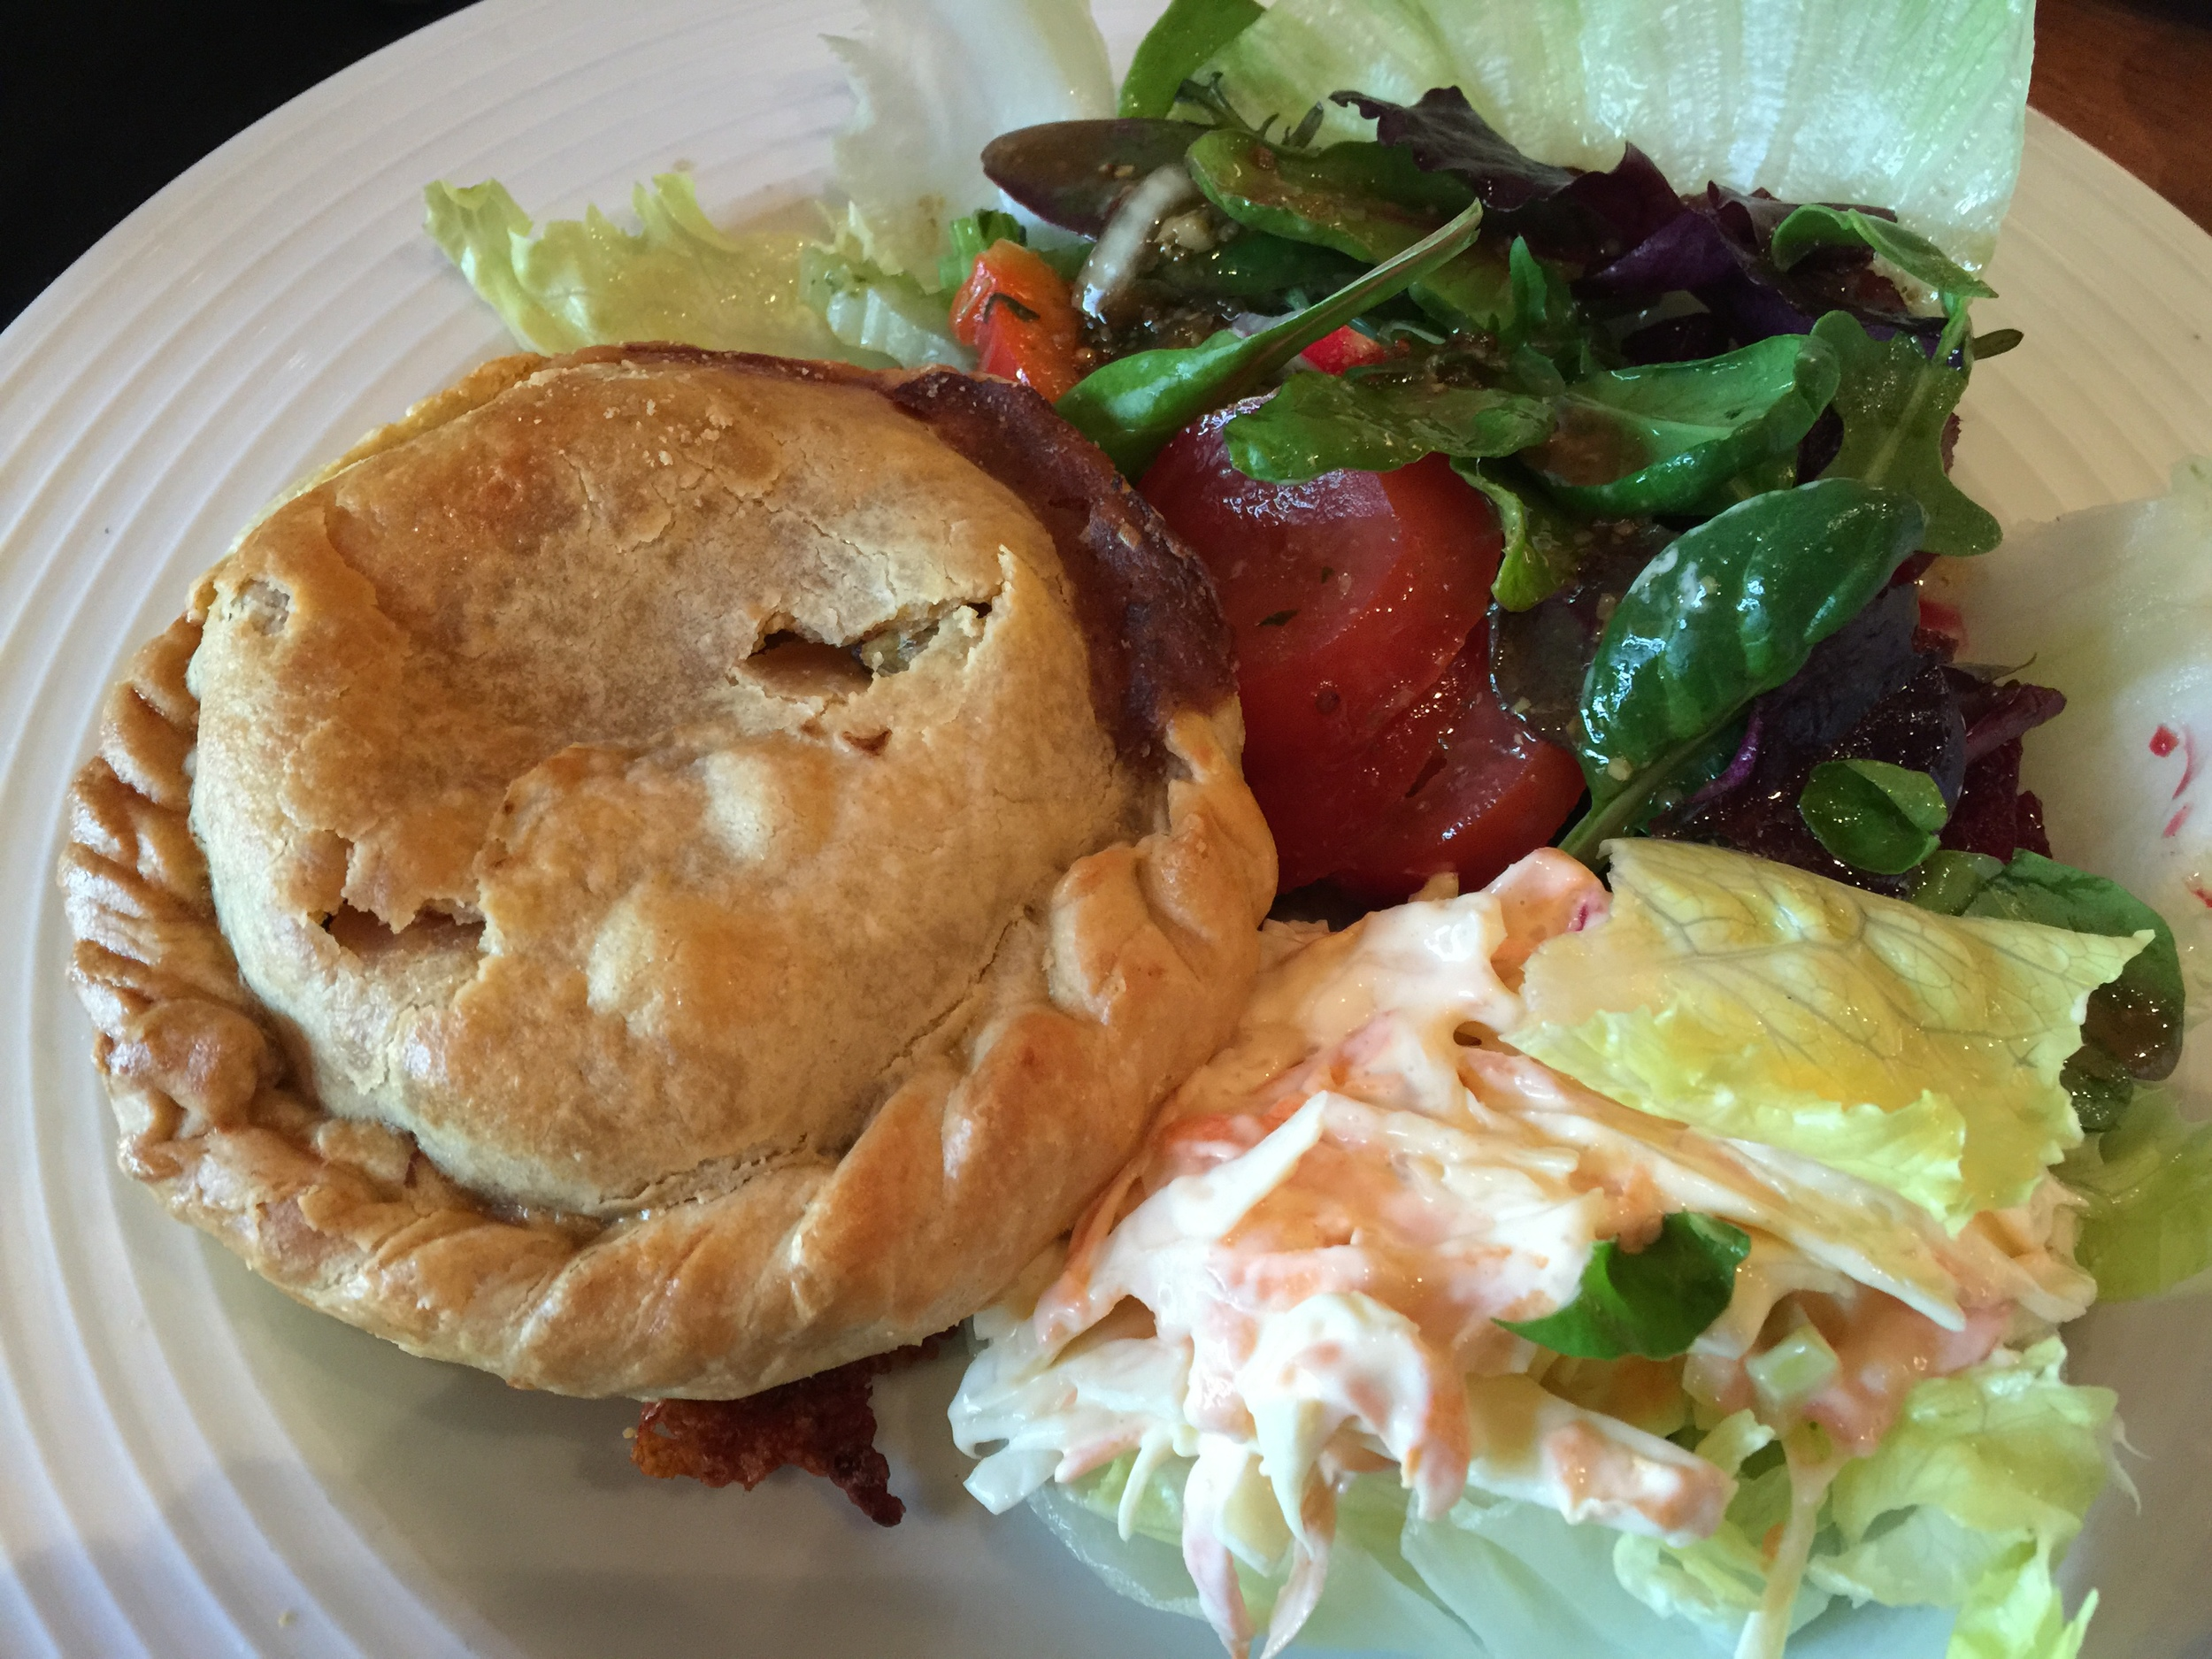 Some English Pub fare. A scrumptious meat pie with a cole slaw and fresh greens. Delightful fare and nothing eases the pain better than good food and good drink!